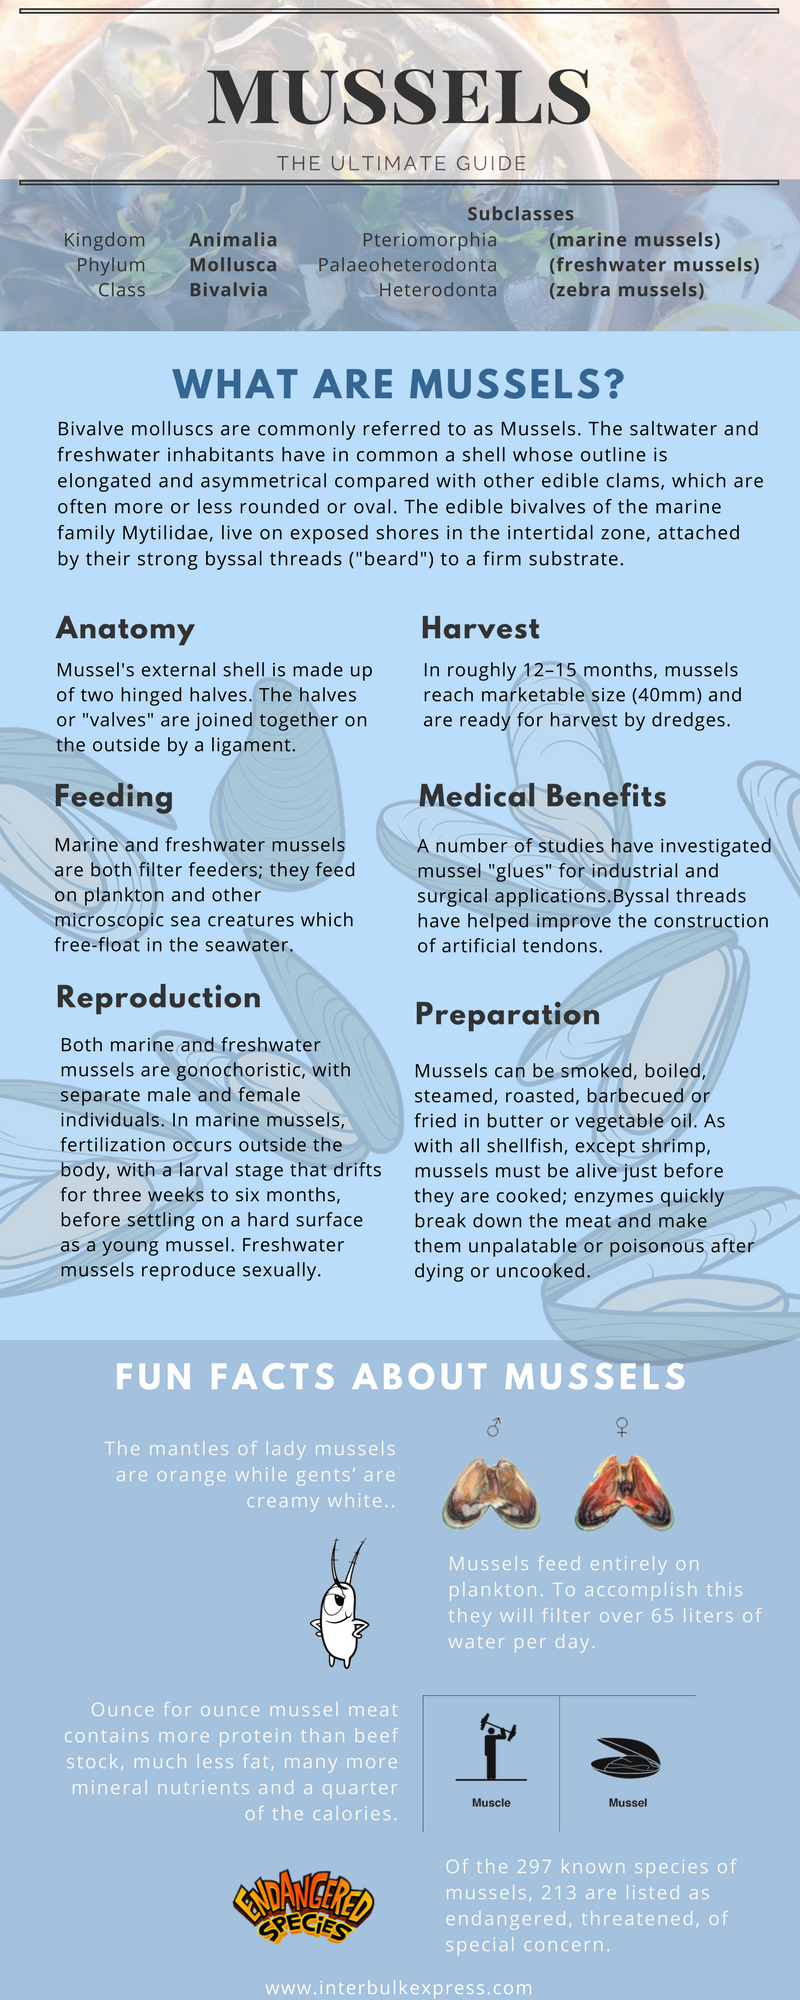 facts about mussels